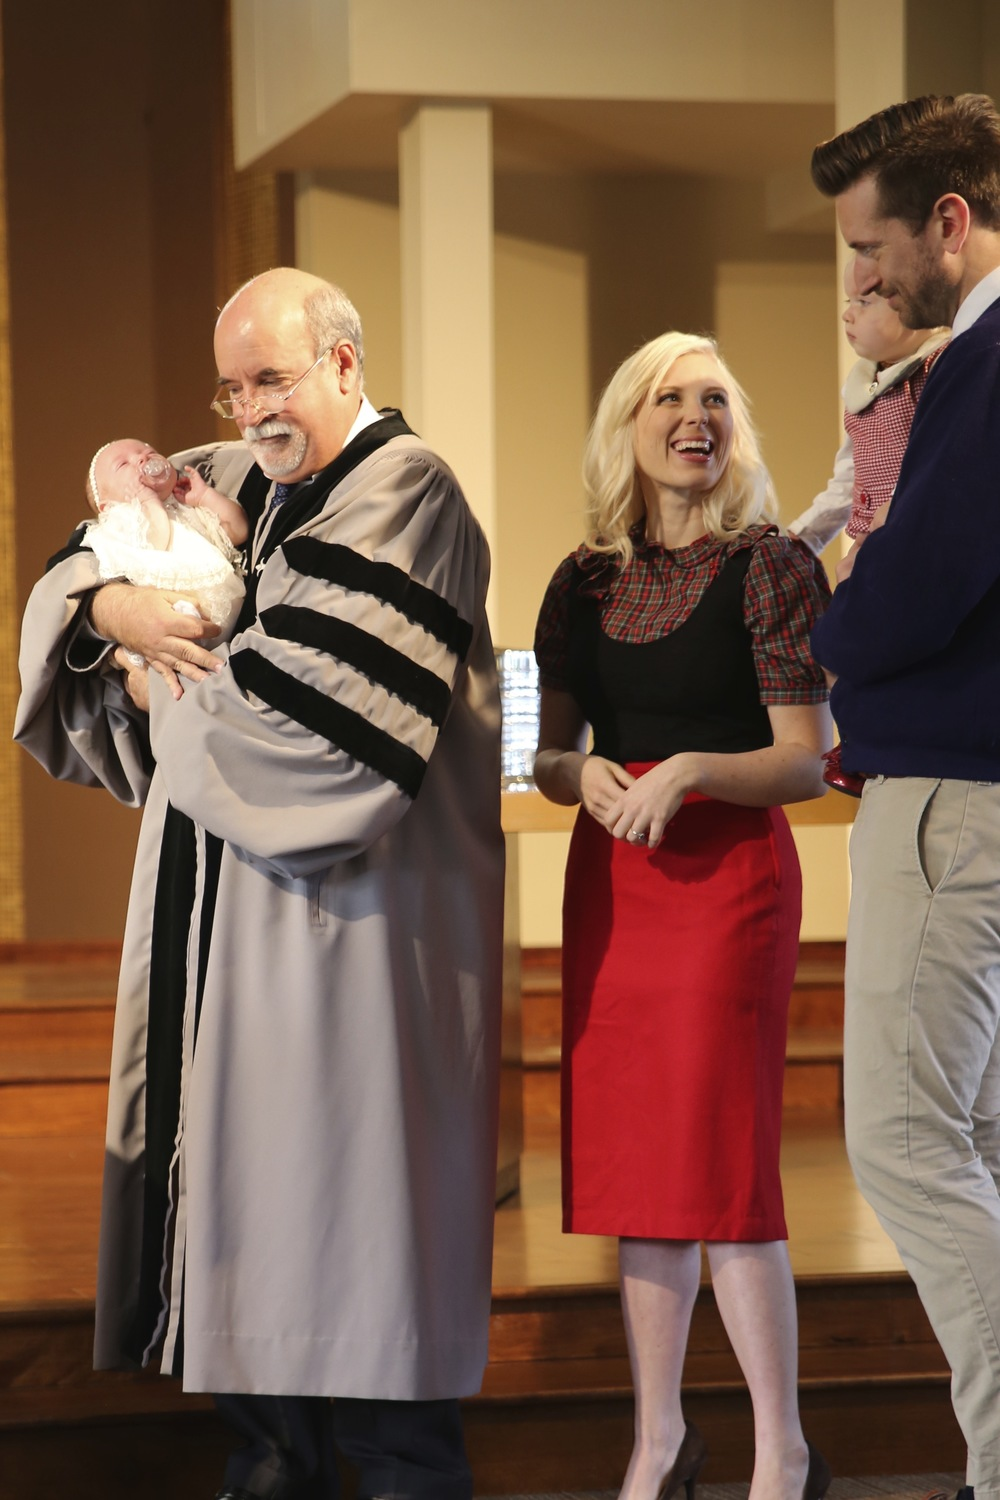 The sacrament of baptism, or Can not baptize a priest and not in church